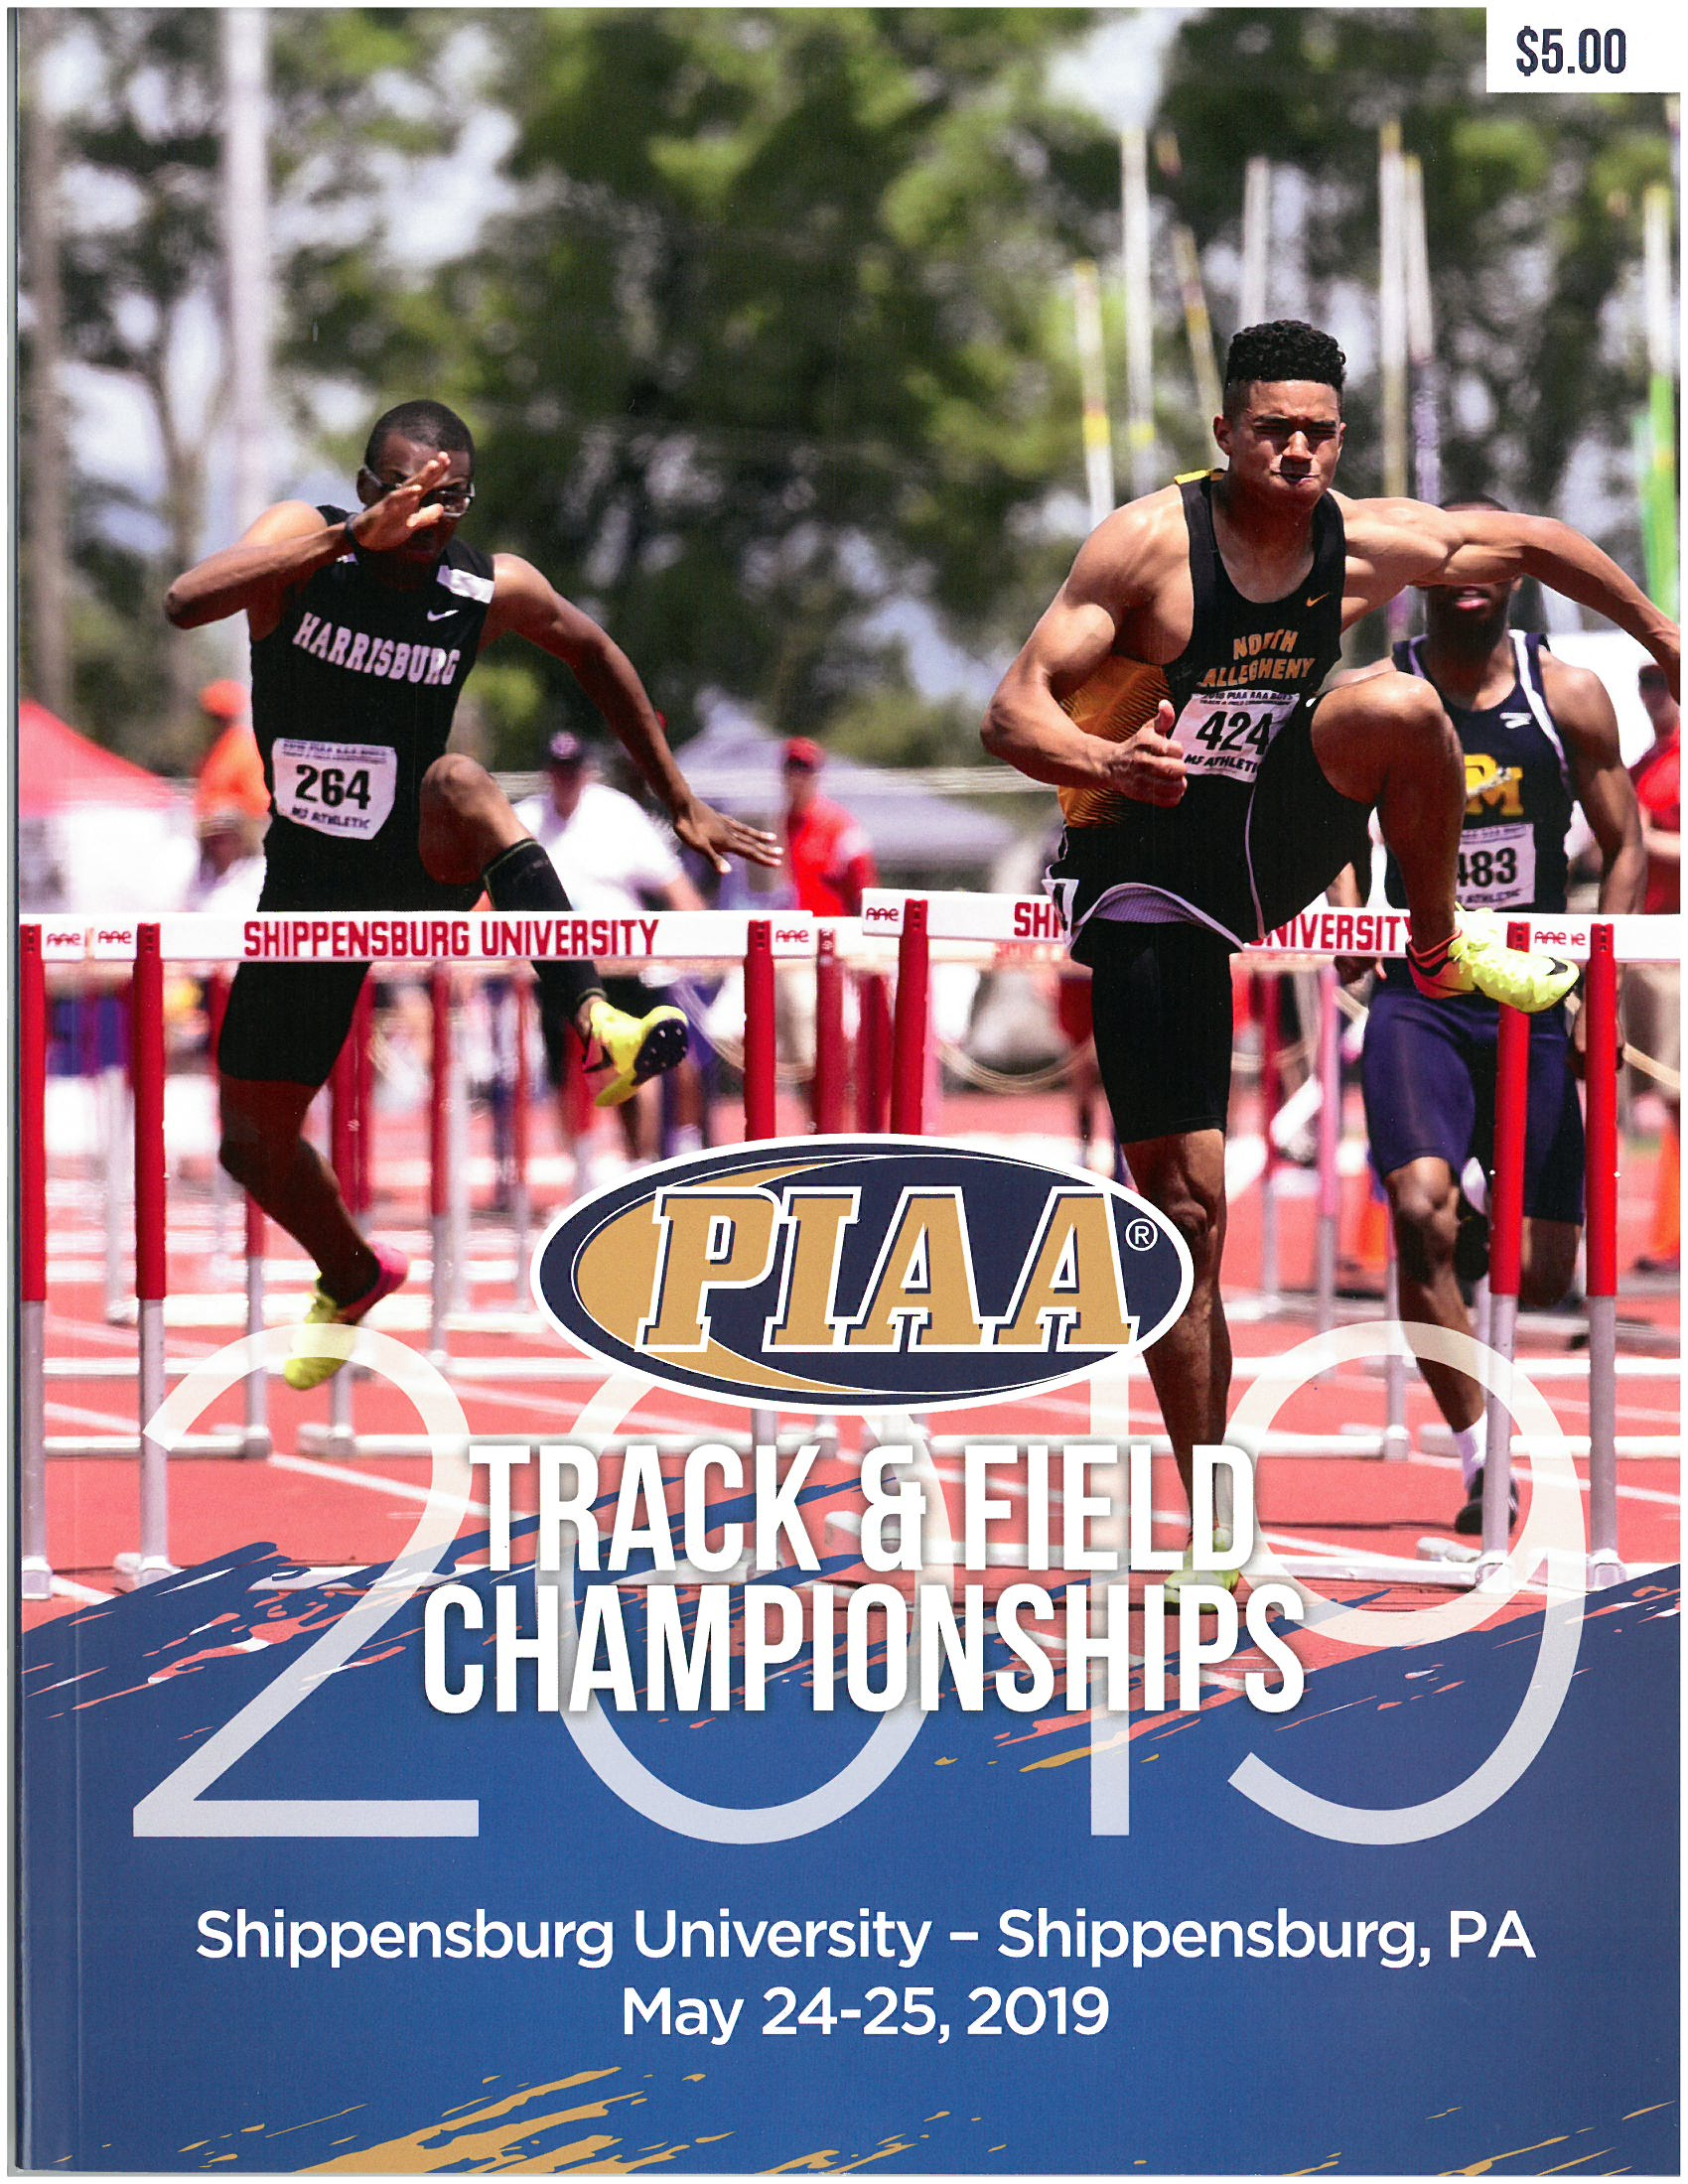 2018 Track and Field Championship Program